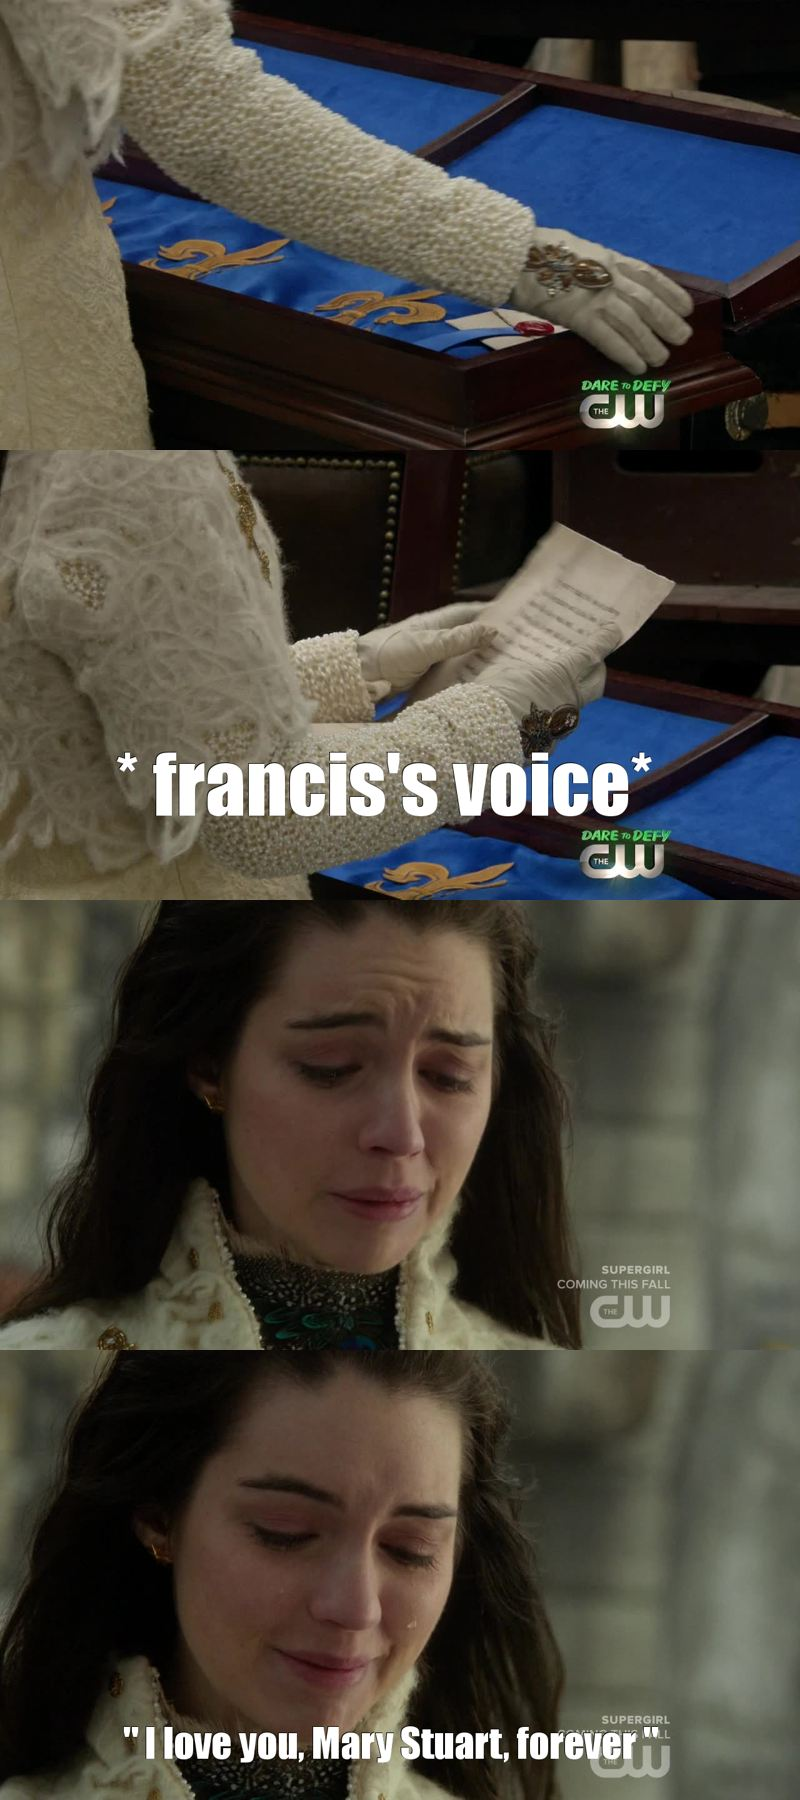 "I WAS LIKE ""OMG FRANCIS'S VOICE I'M GONNA DIE, I MISS HIM SO MUCH OMG FRARY MY LIFE"" AND IT WAS THE MUSIC OF FRANCIS'S DEATH, I'M BROKEN"